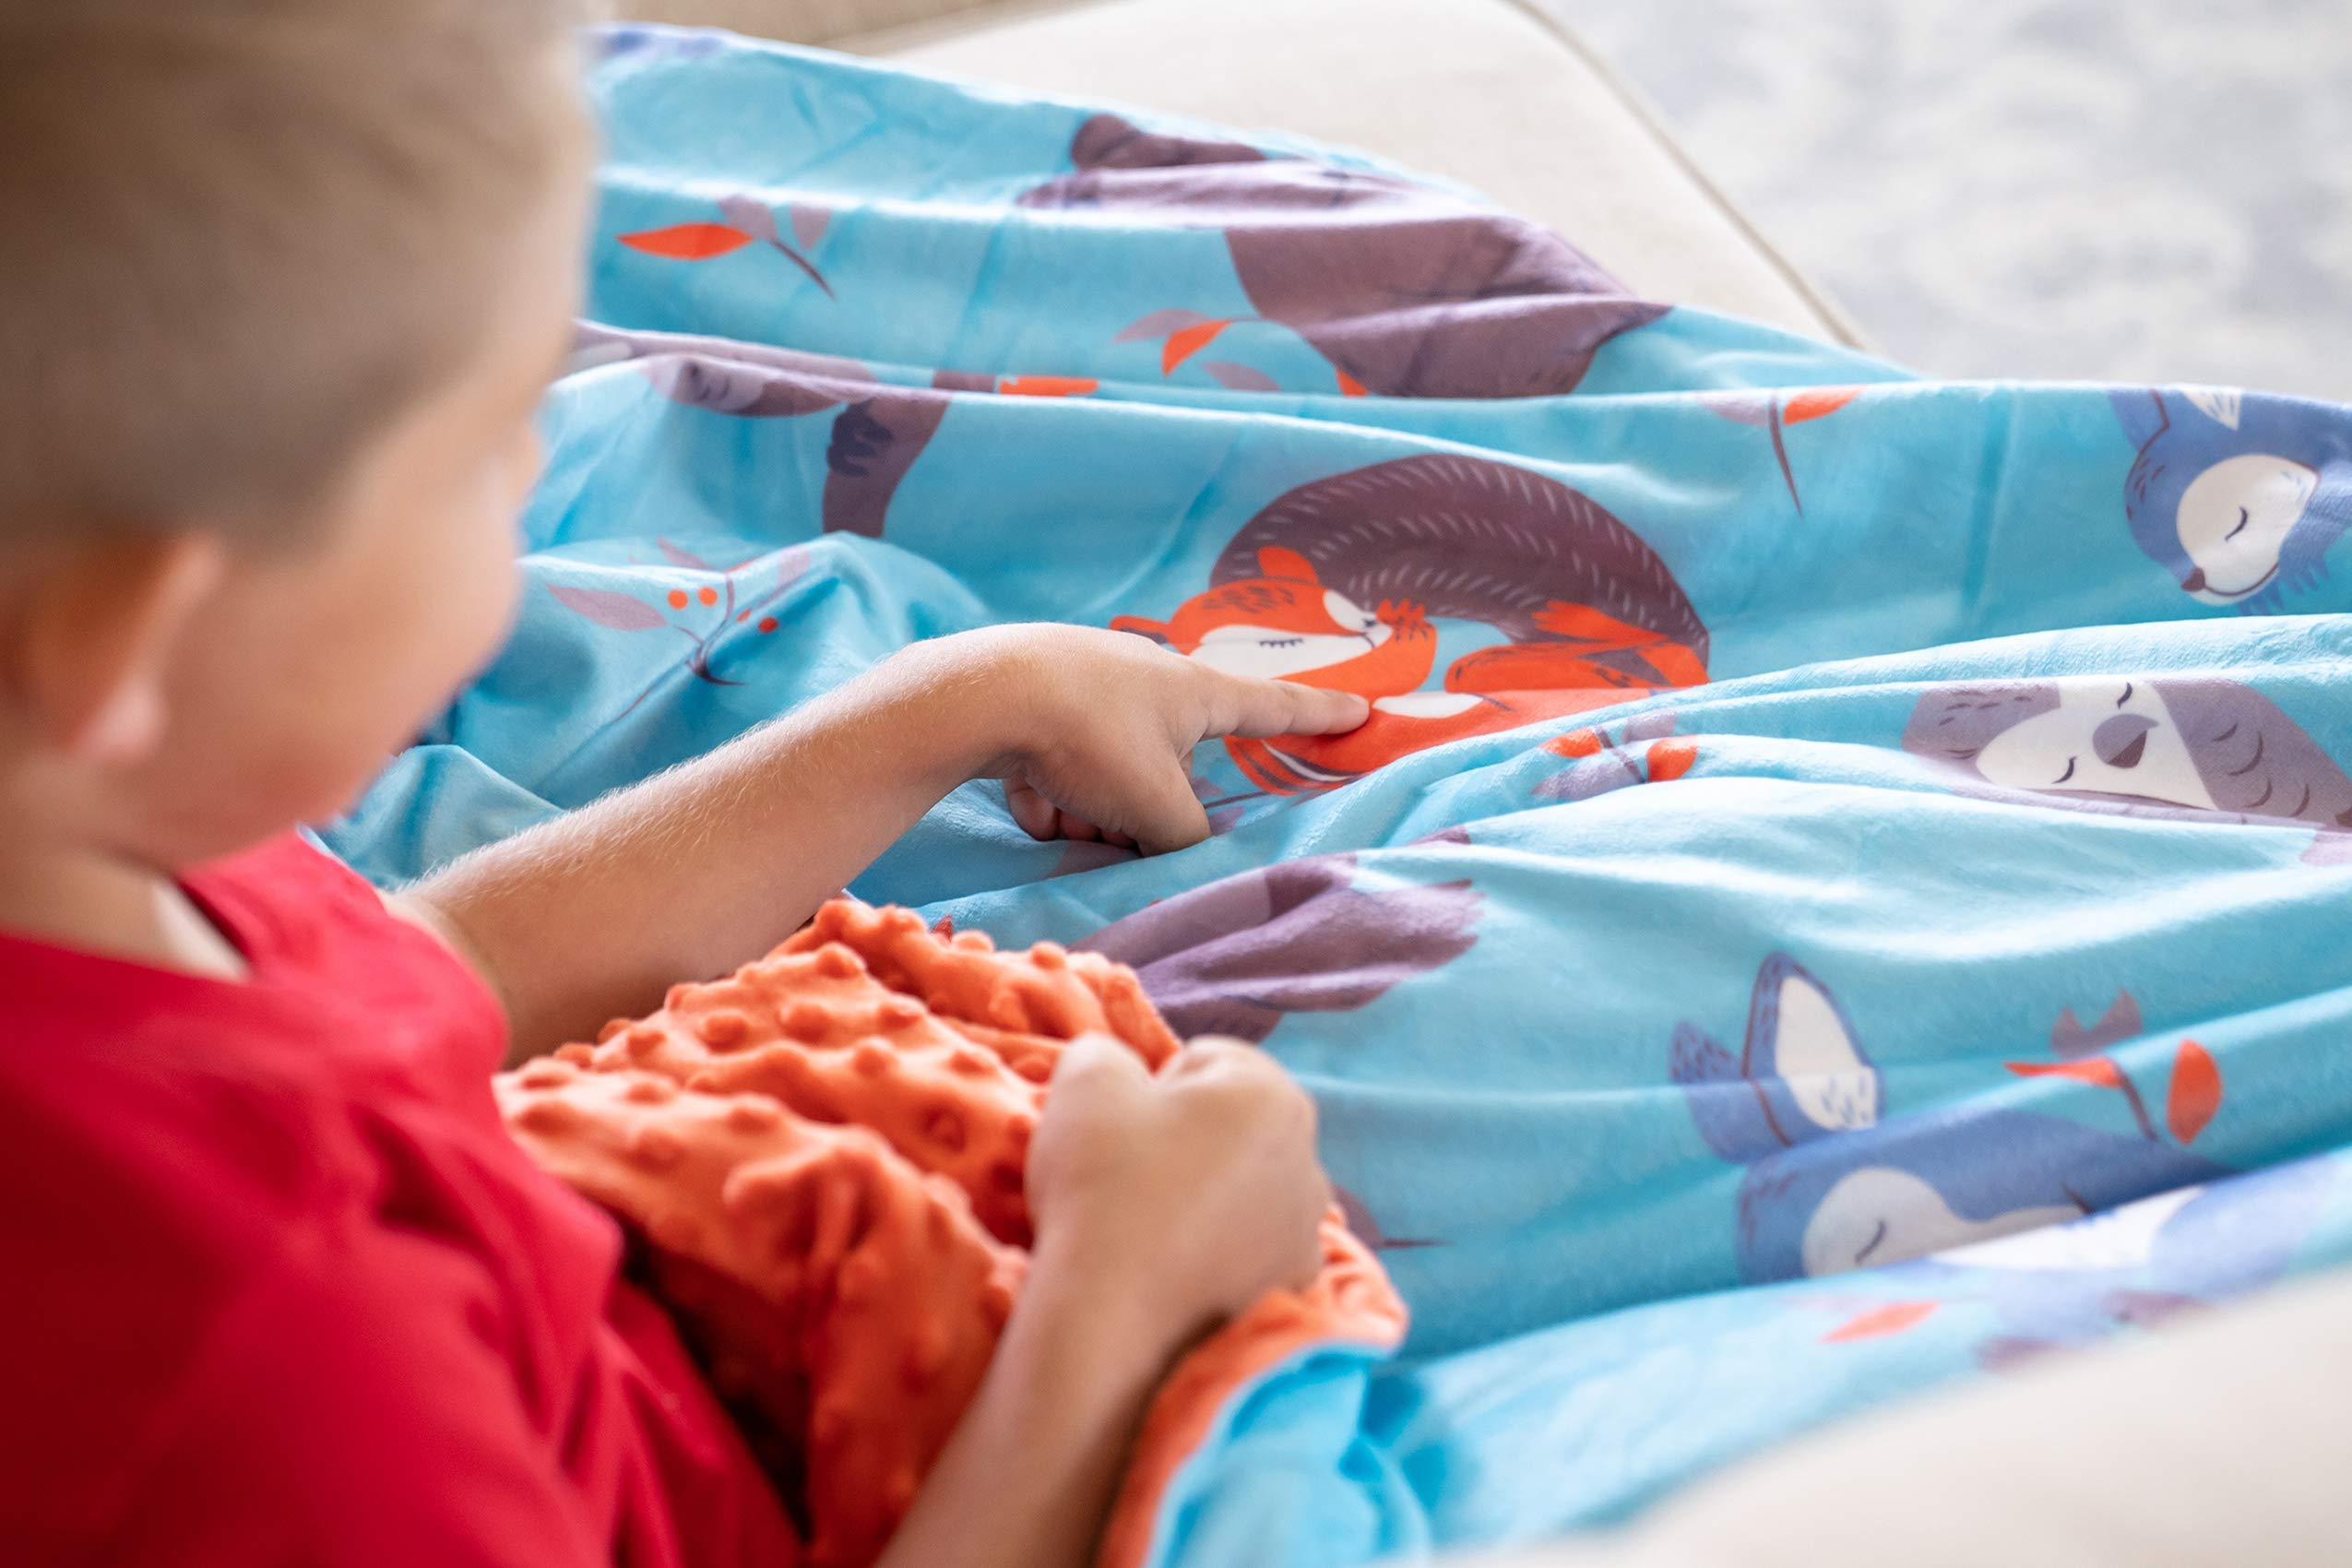 Sweetzer & Orange Weighted Blanket for Kids 5lbs Heavy Blanket, Best for 42-63lb Children - Warming and Cooling Weighted Comforter with Minky Cover (5lb, Sleepy Animals) by Sweetzer & Orange (Image #9)